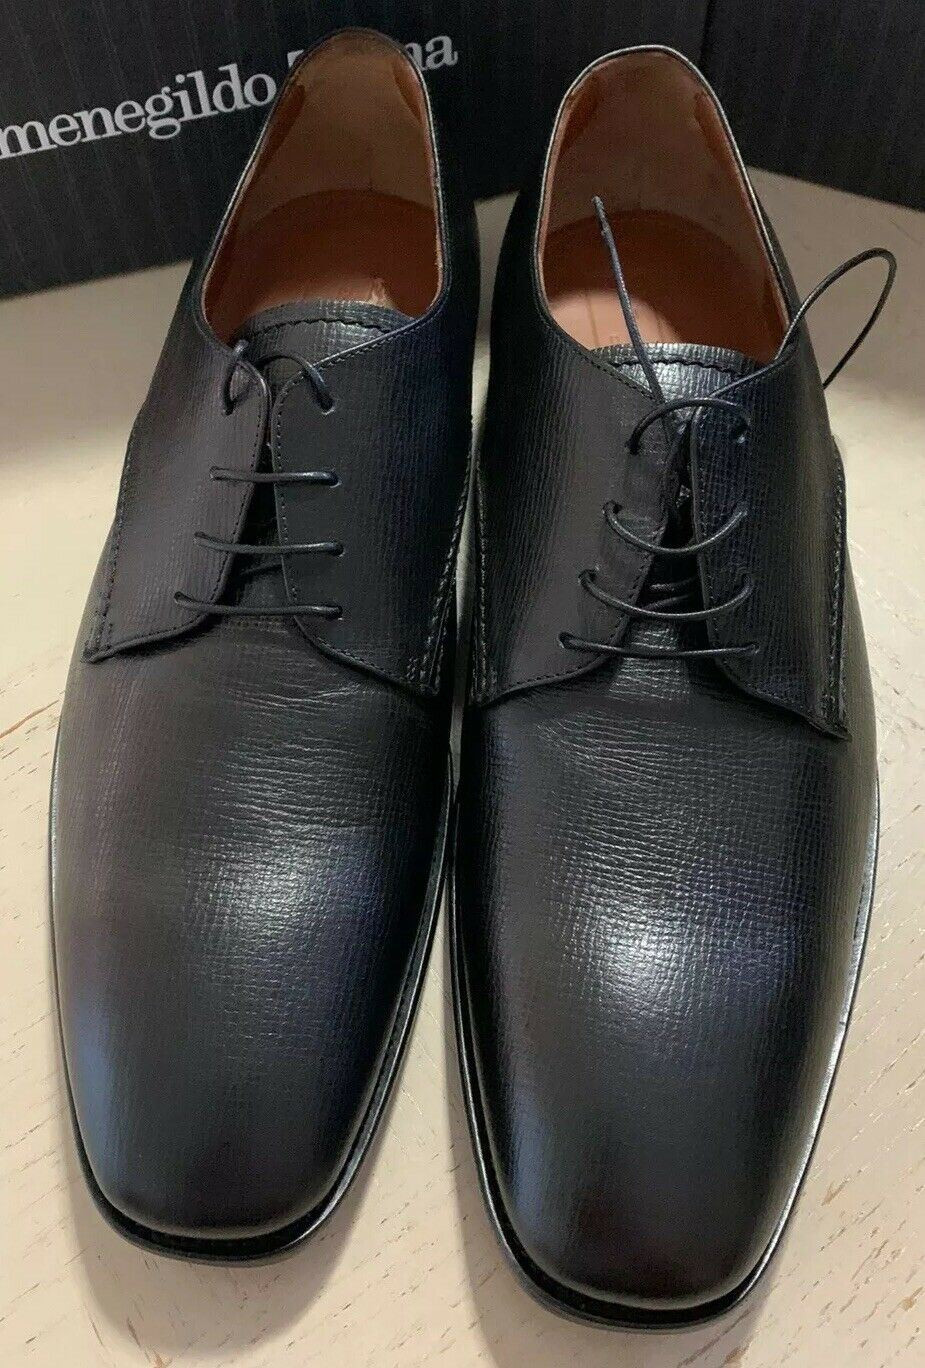 New $595 Ermenegildo Zegna Oxford Shoes Black 12 US ( 45 Eu ) Italy